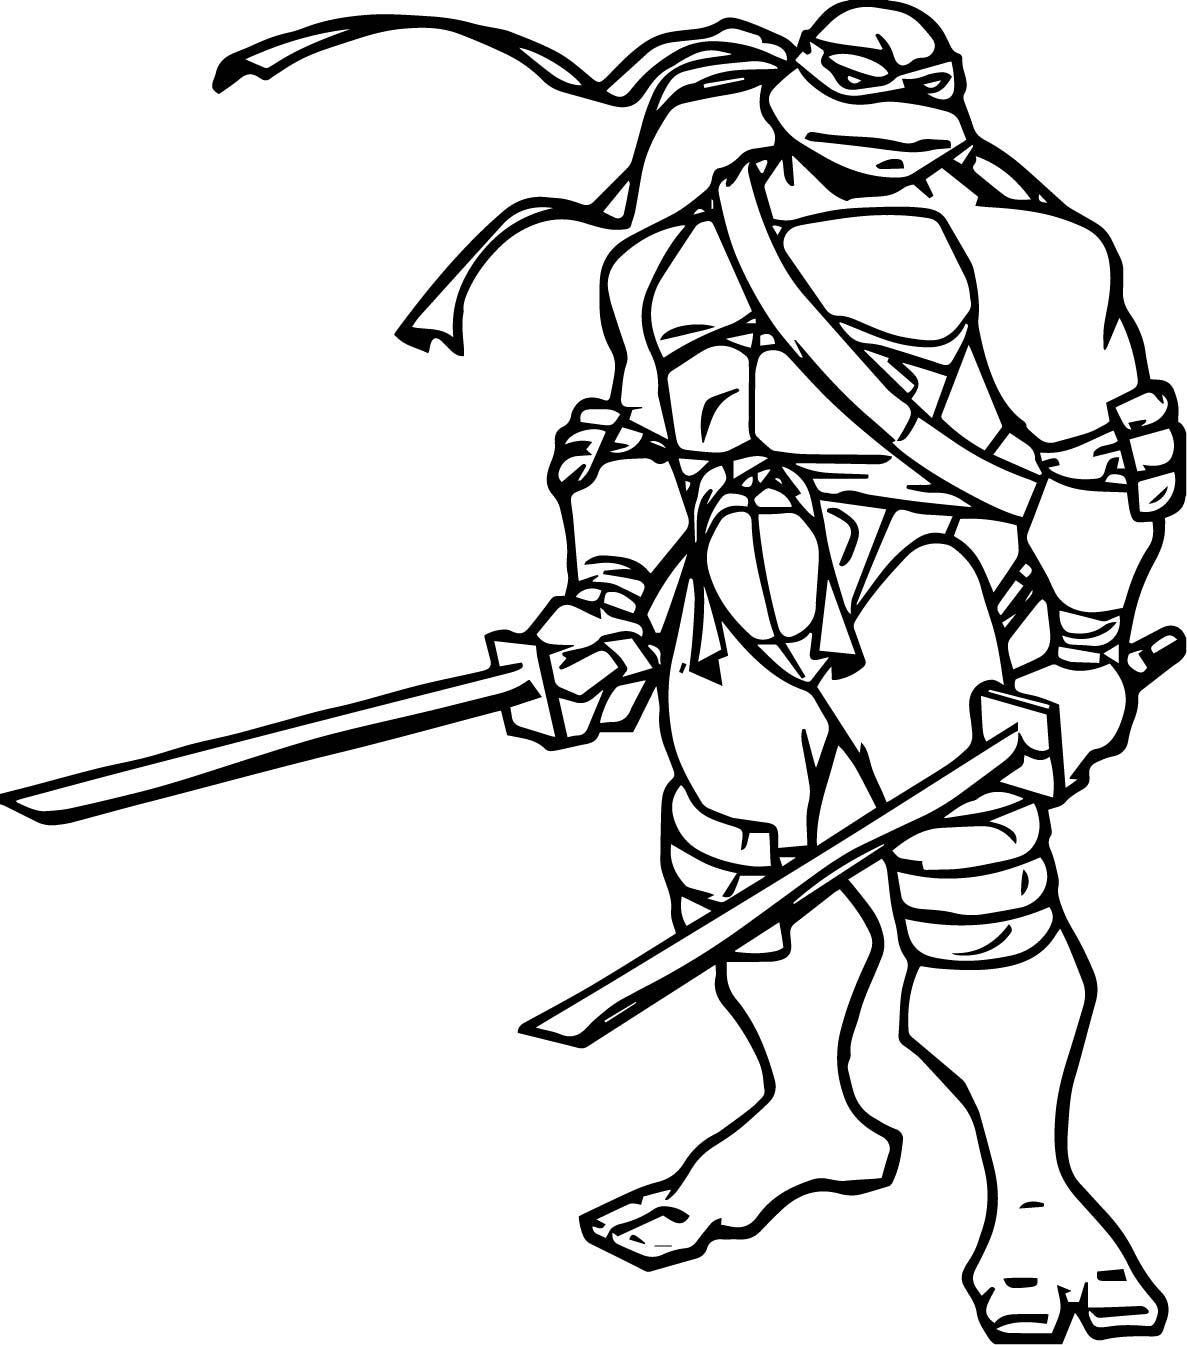 Ninja Turtle Two Blade Leonardo Coloring Page